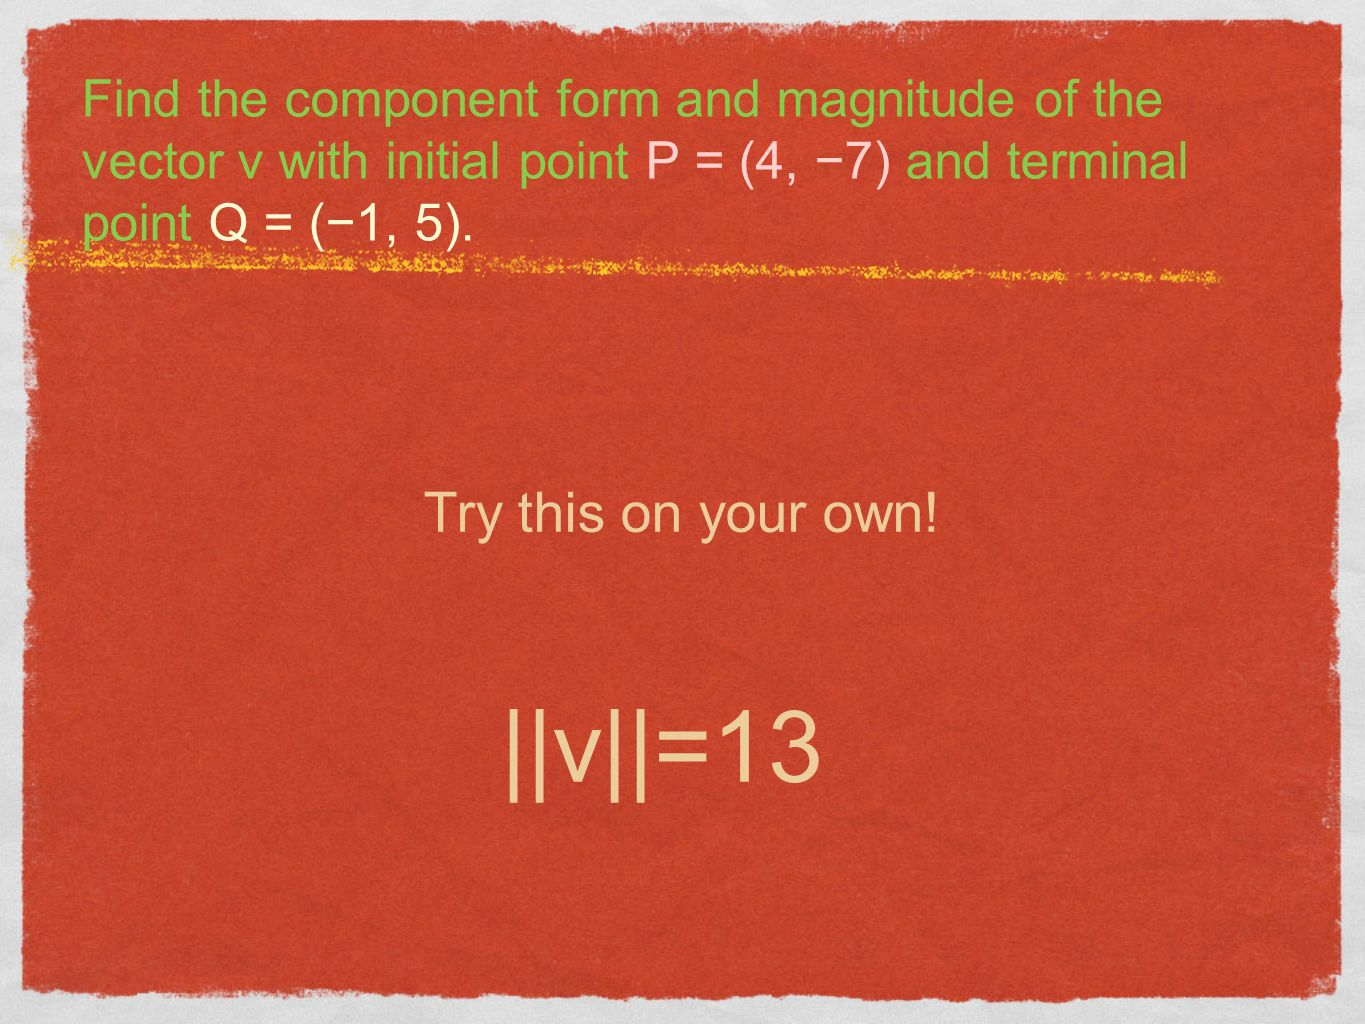 Find the component form and magnitude of the vector v with initial point P = (4, 7) and terminal point Q = (1, 5).